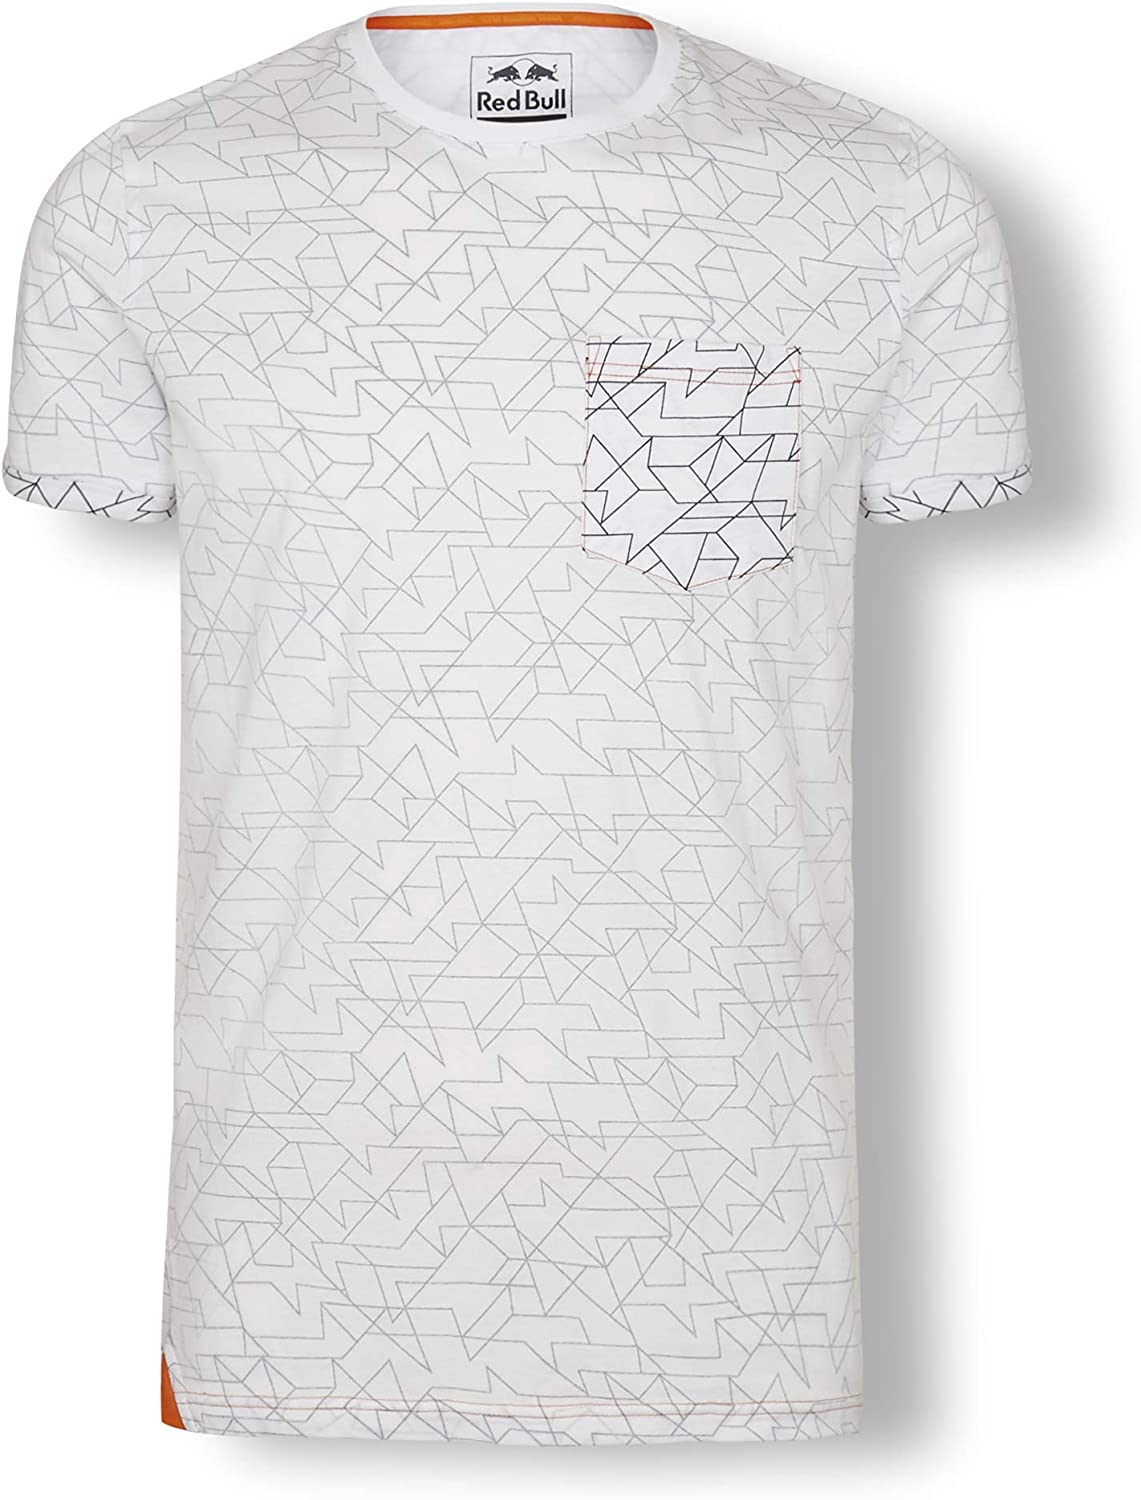 Red Bull KTM Inside-out-Print Camiseta, Blanco Hombre Top, KTM Factory Racing Original Ropa & Accesorios